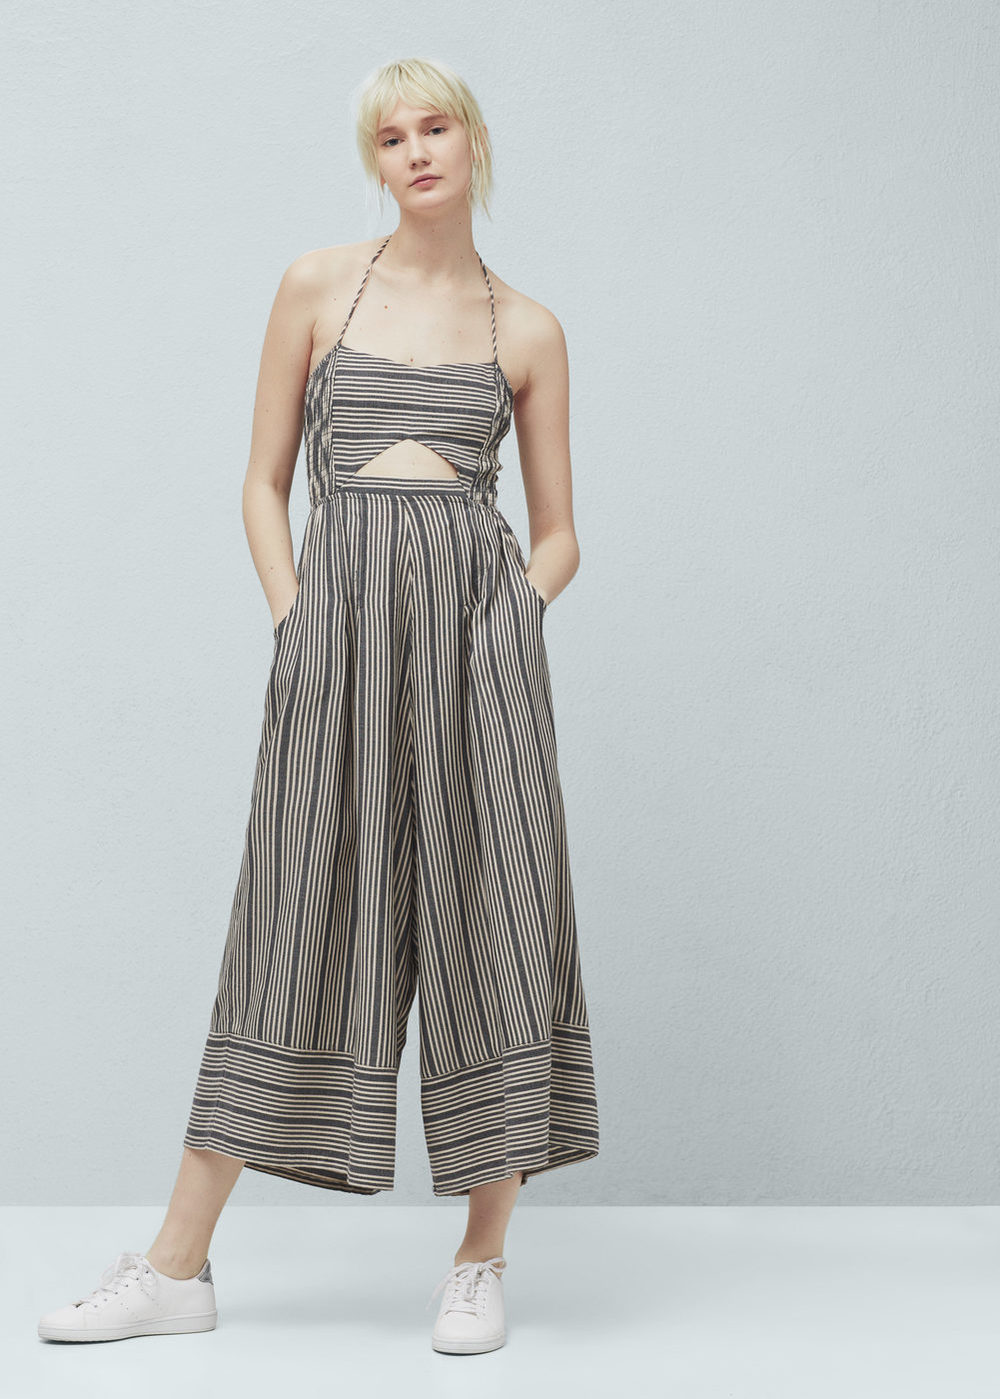 Mango Striped Cotton Jumpsuit, $69